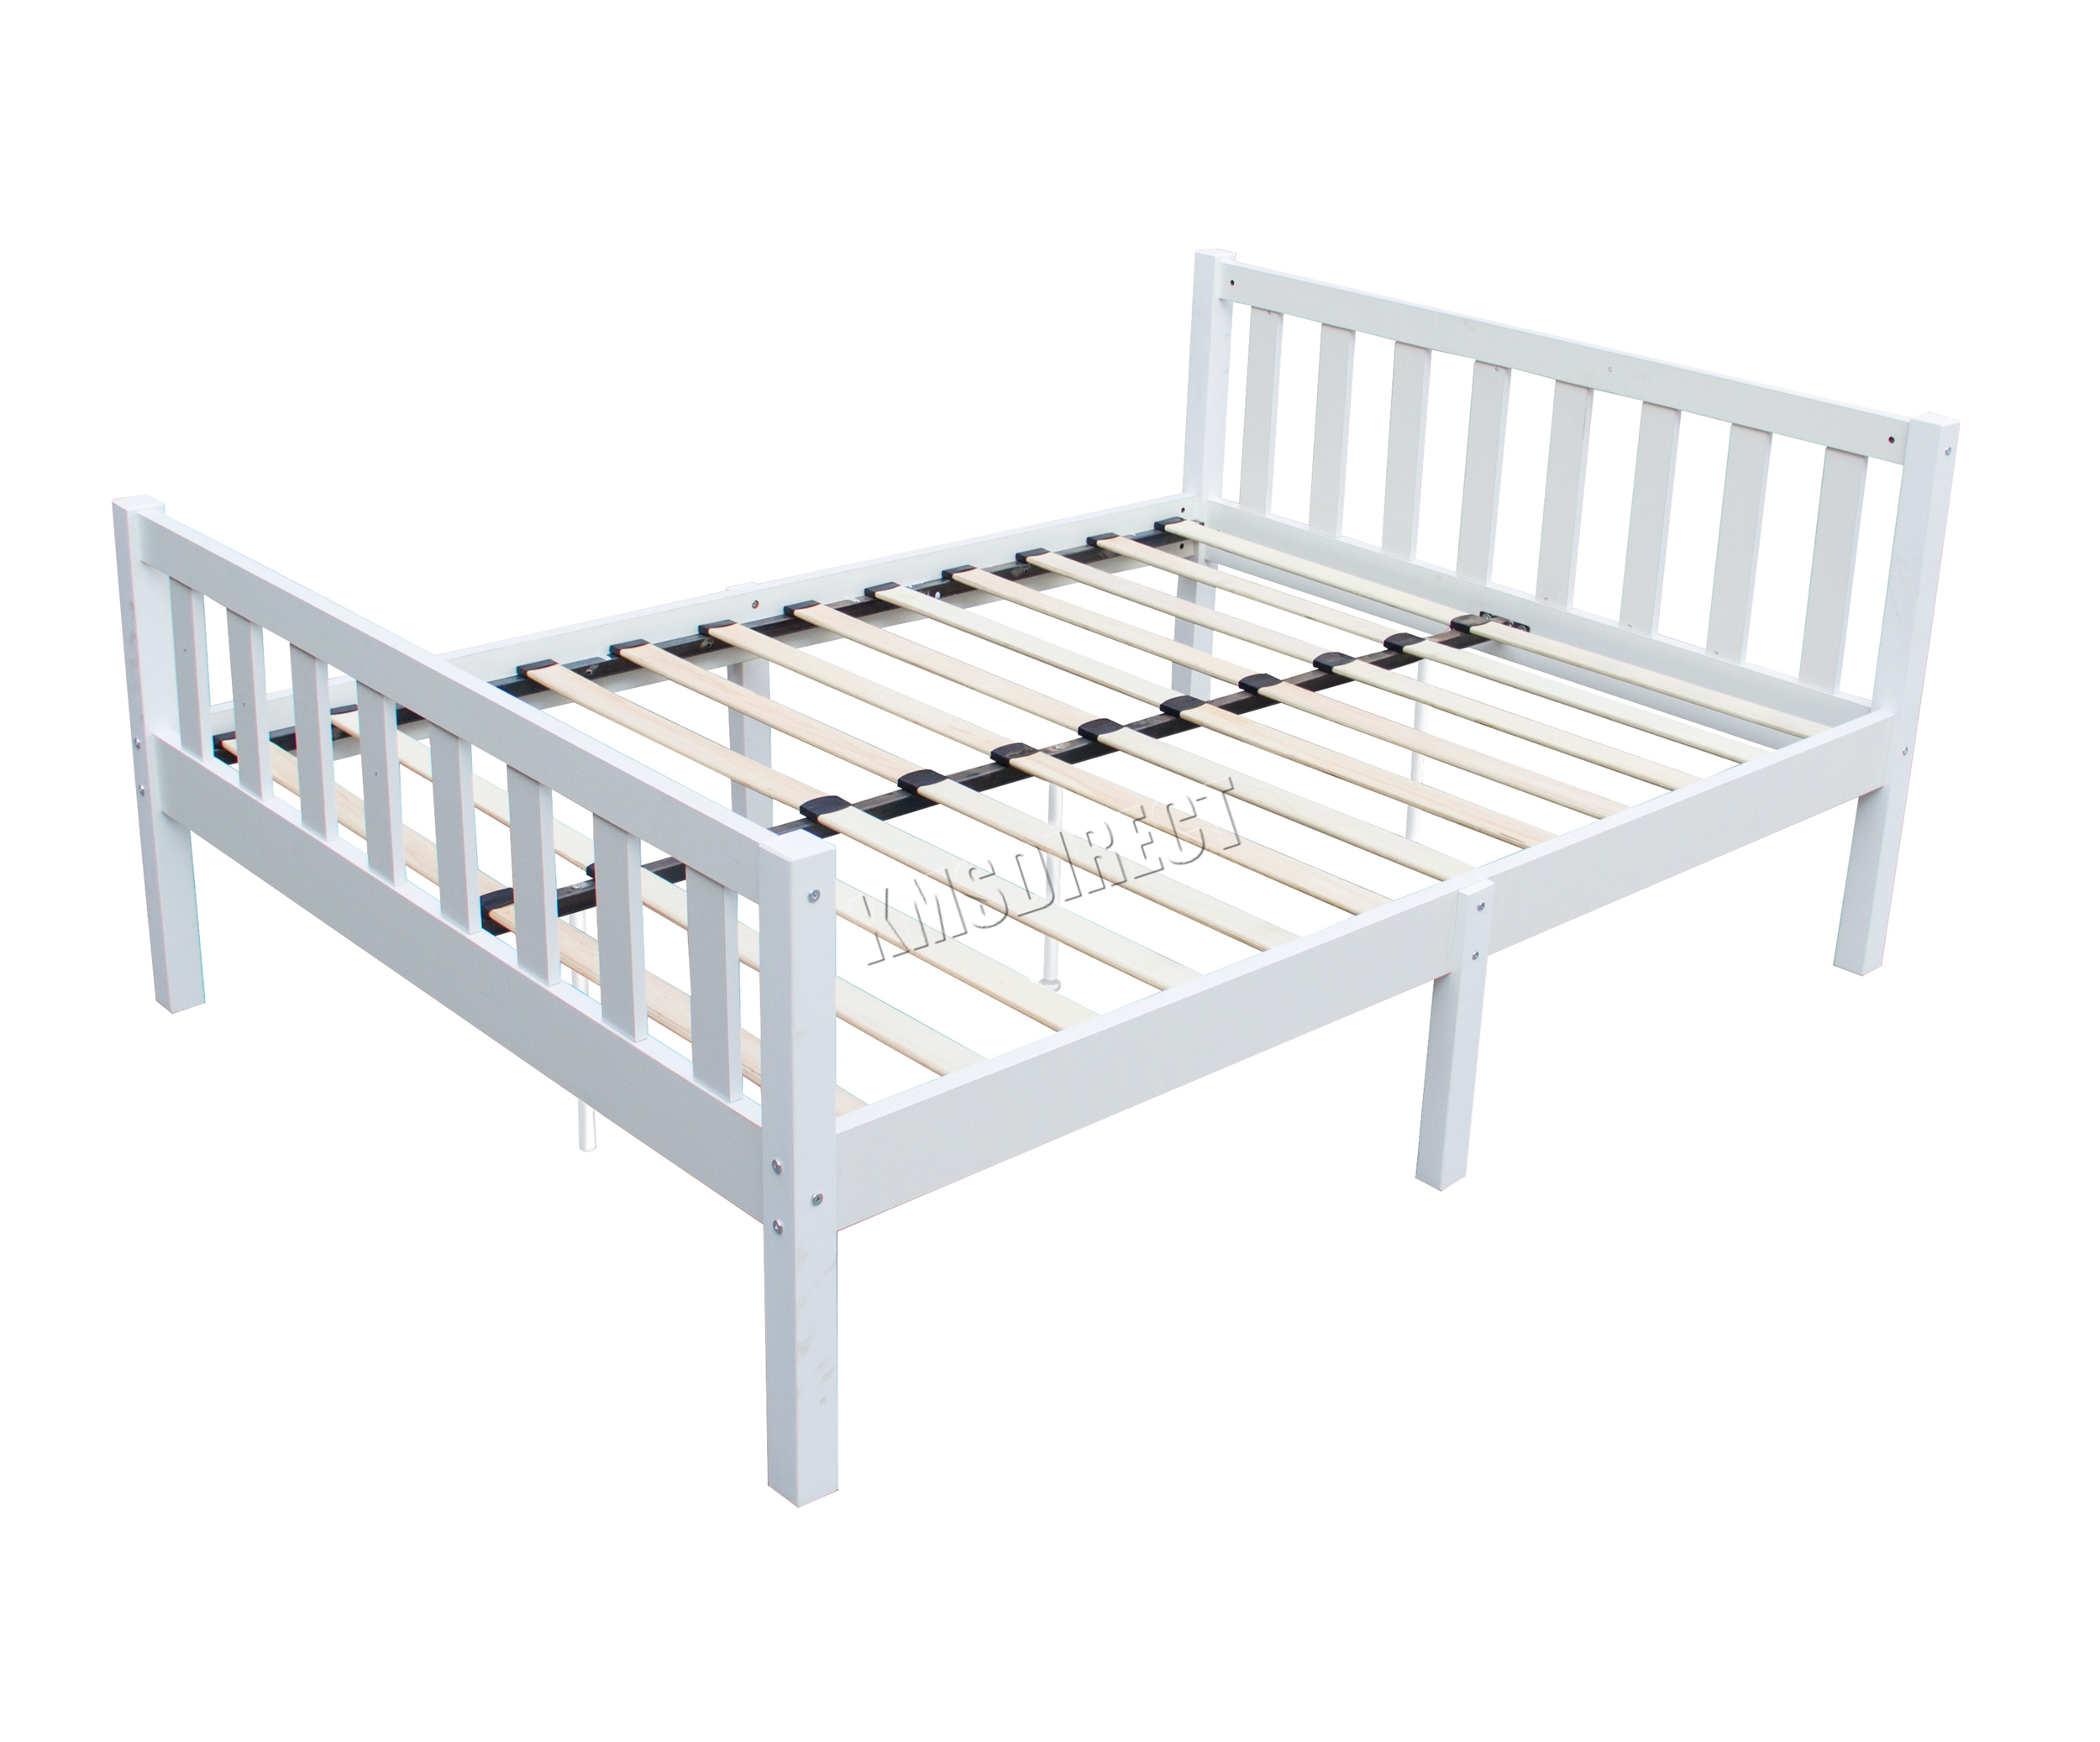 Westwood wooden bed frame solid pine bedroom furniture home single double white ebay Home furniture single bed